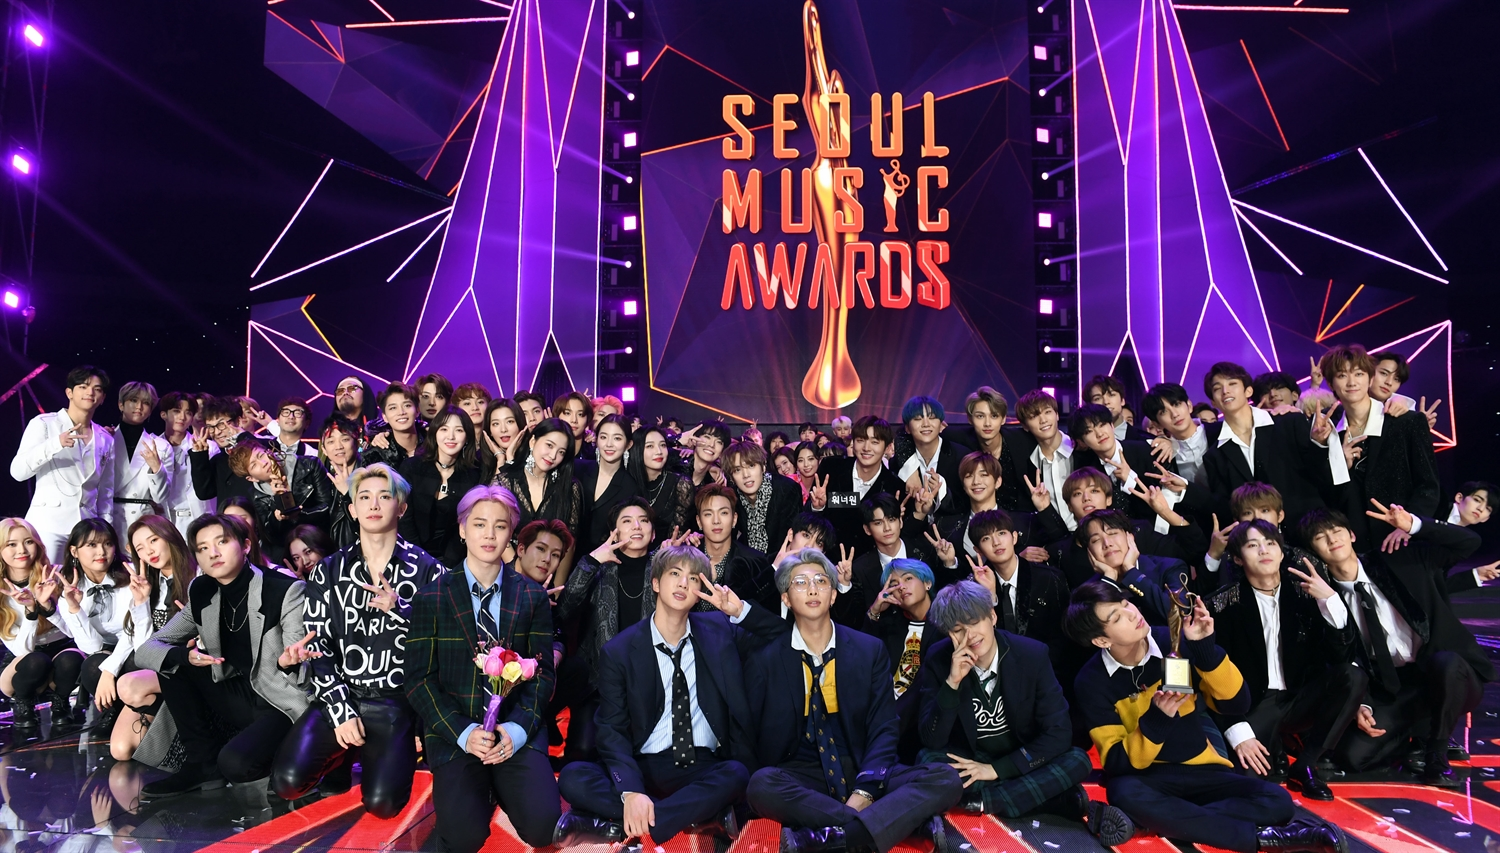 Nominations for the 30th Seoul Music Award announced